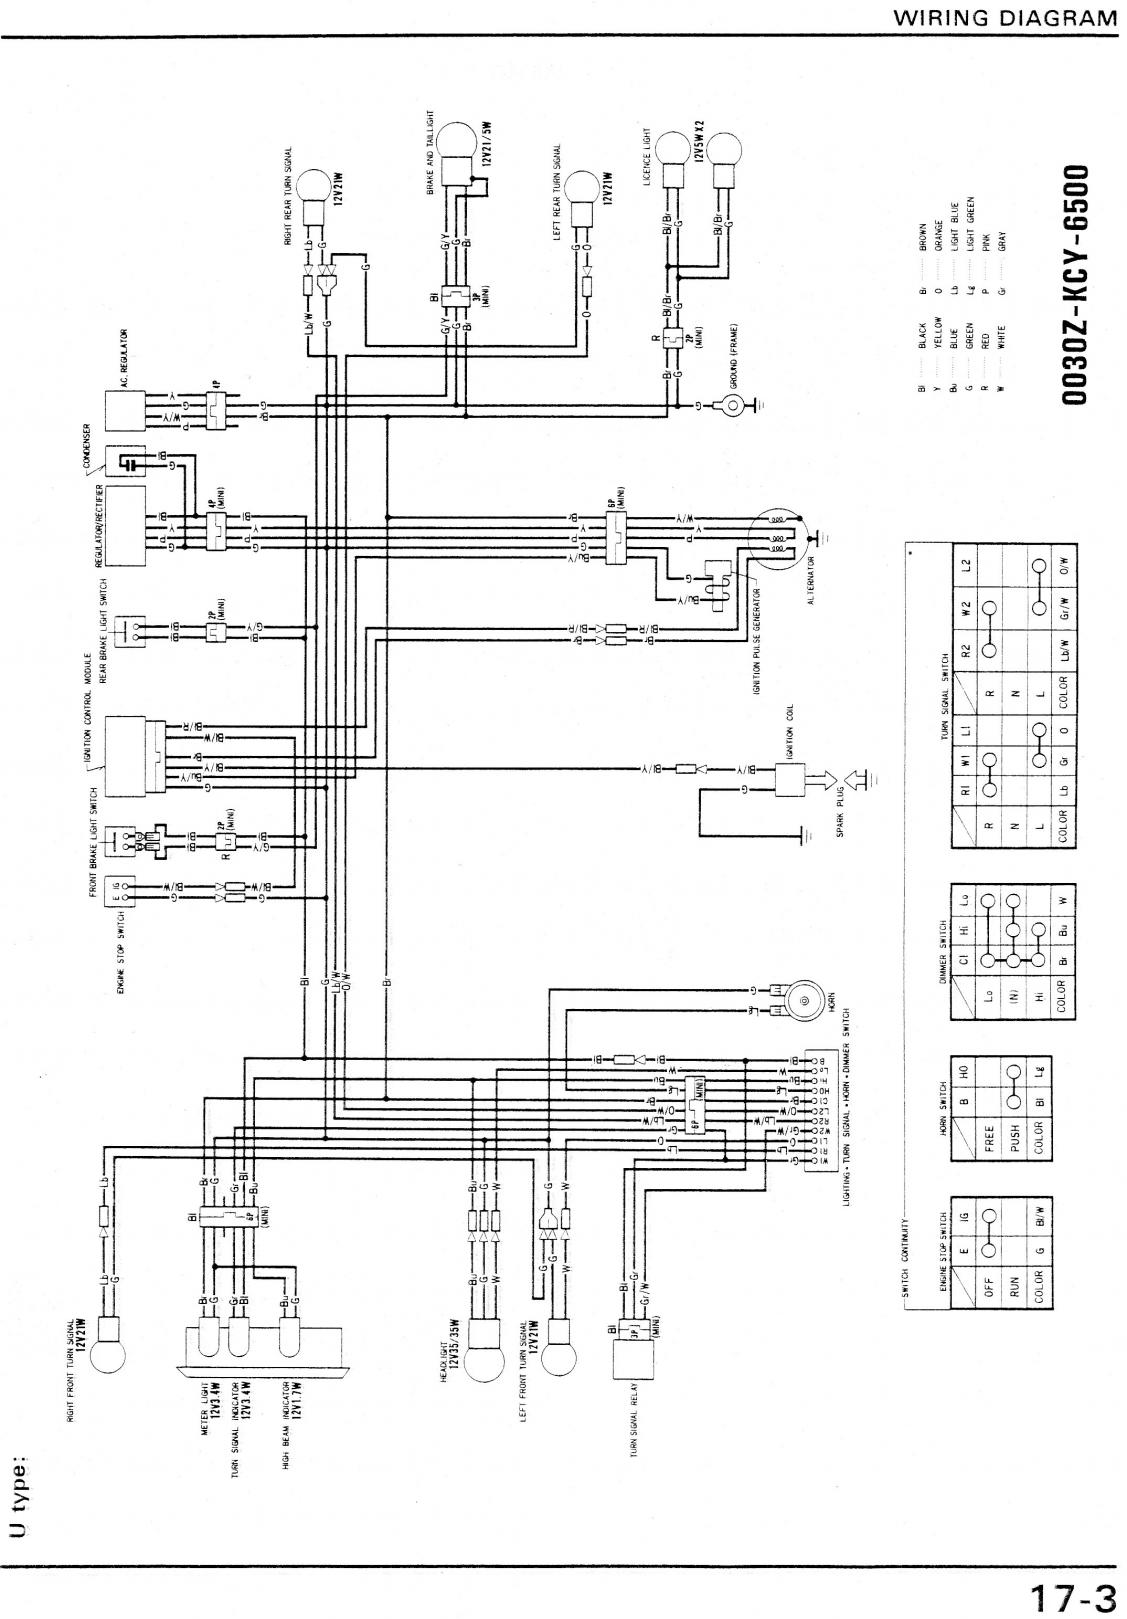 Wiring Diagram For Honda Xr400r Not Lossing Sl70 Motorcycle All About Diagrams Data Rh 8 Hrc Solarhandel De Parts Civic Schematics